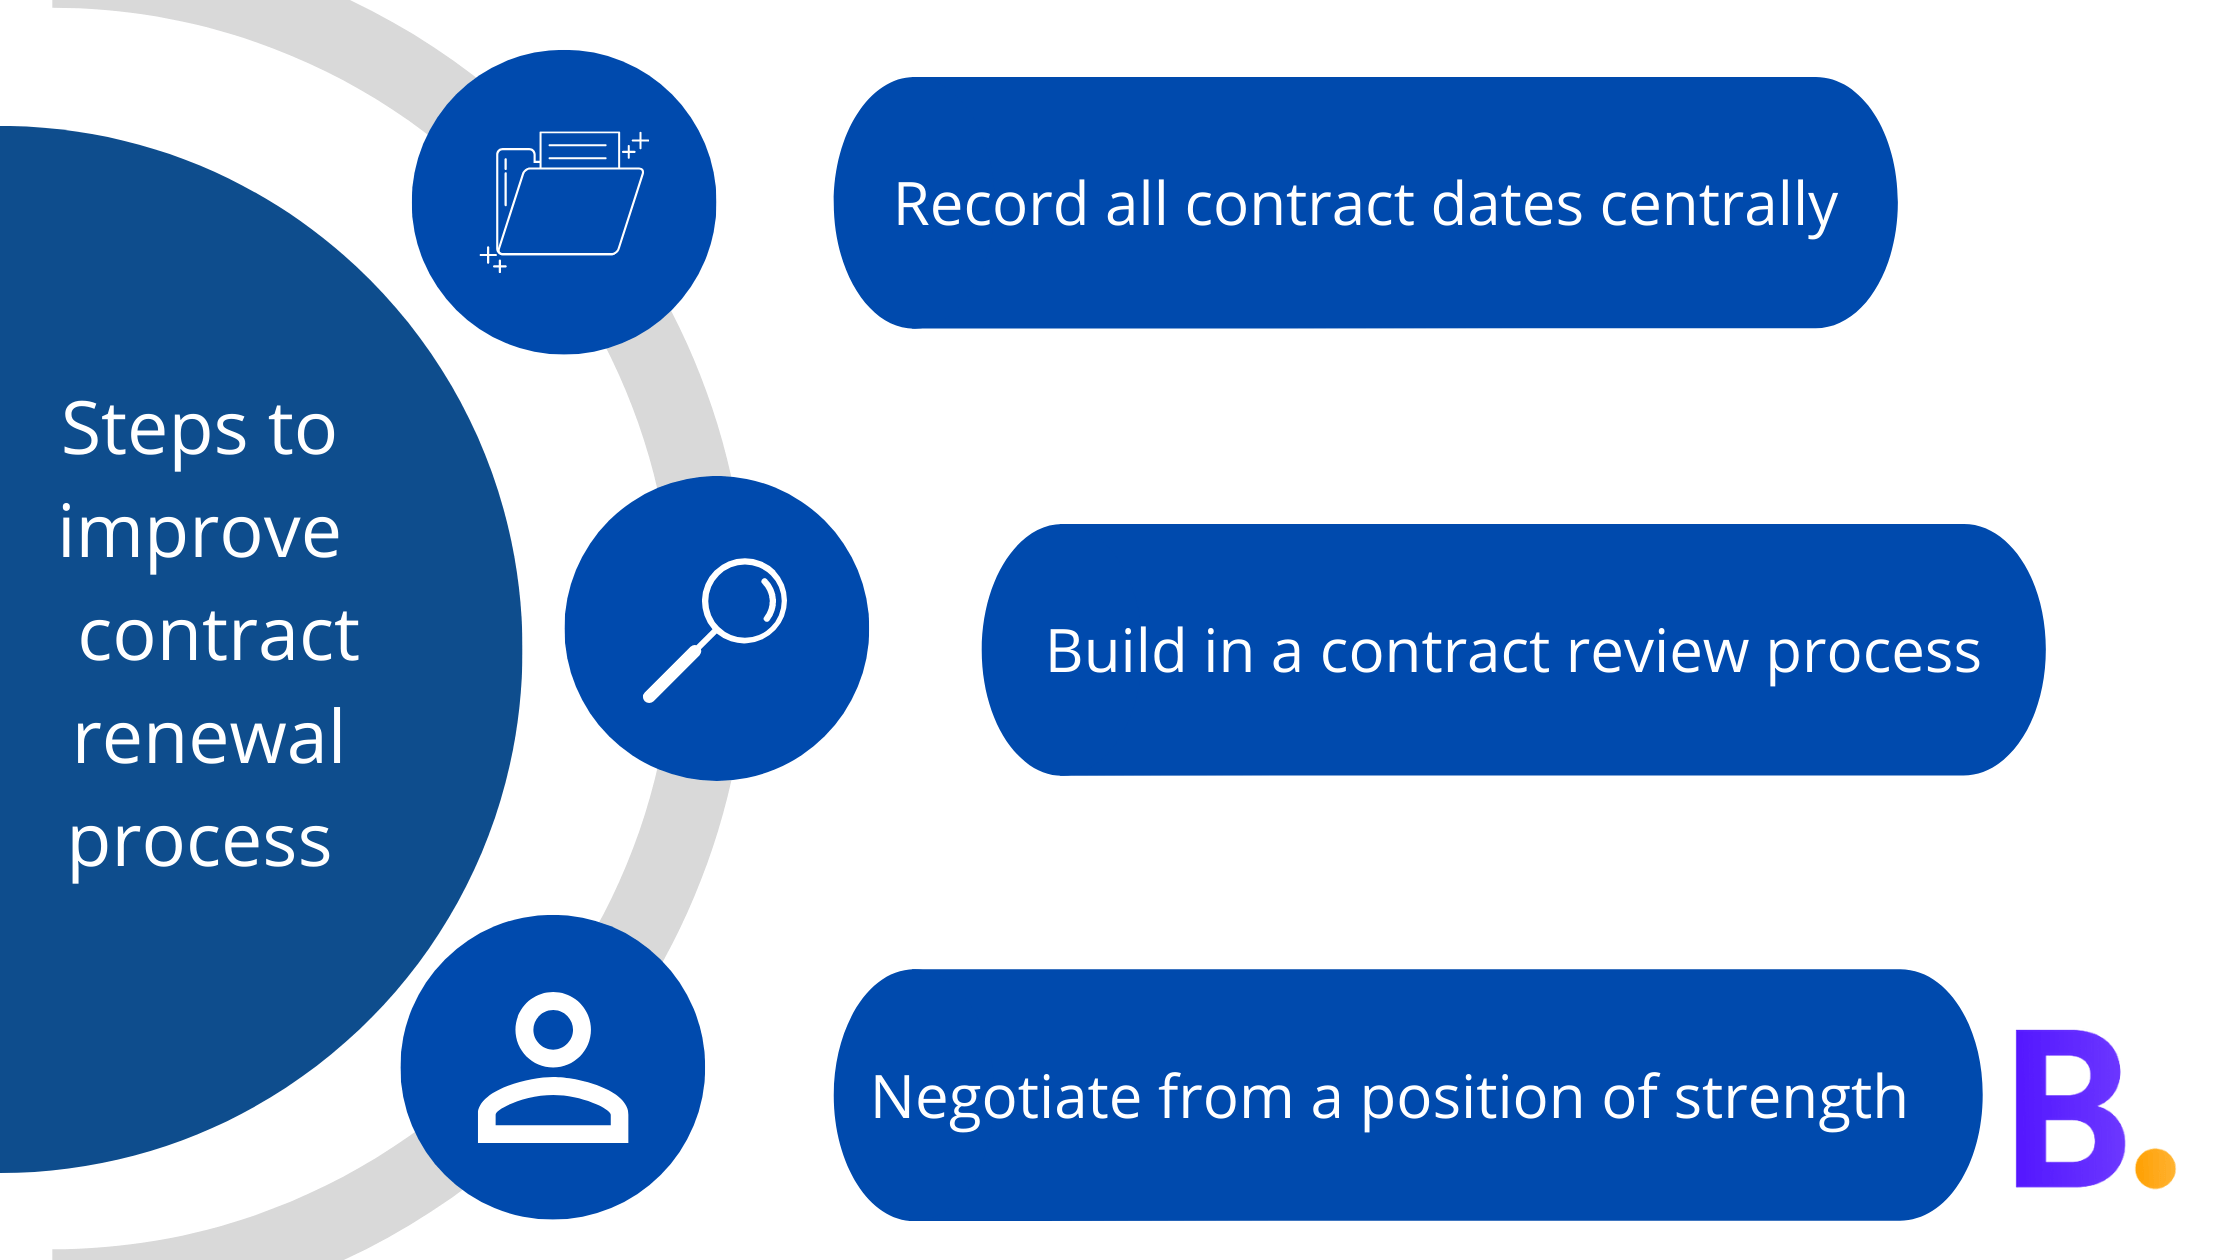 Steps to improve contract renewal process